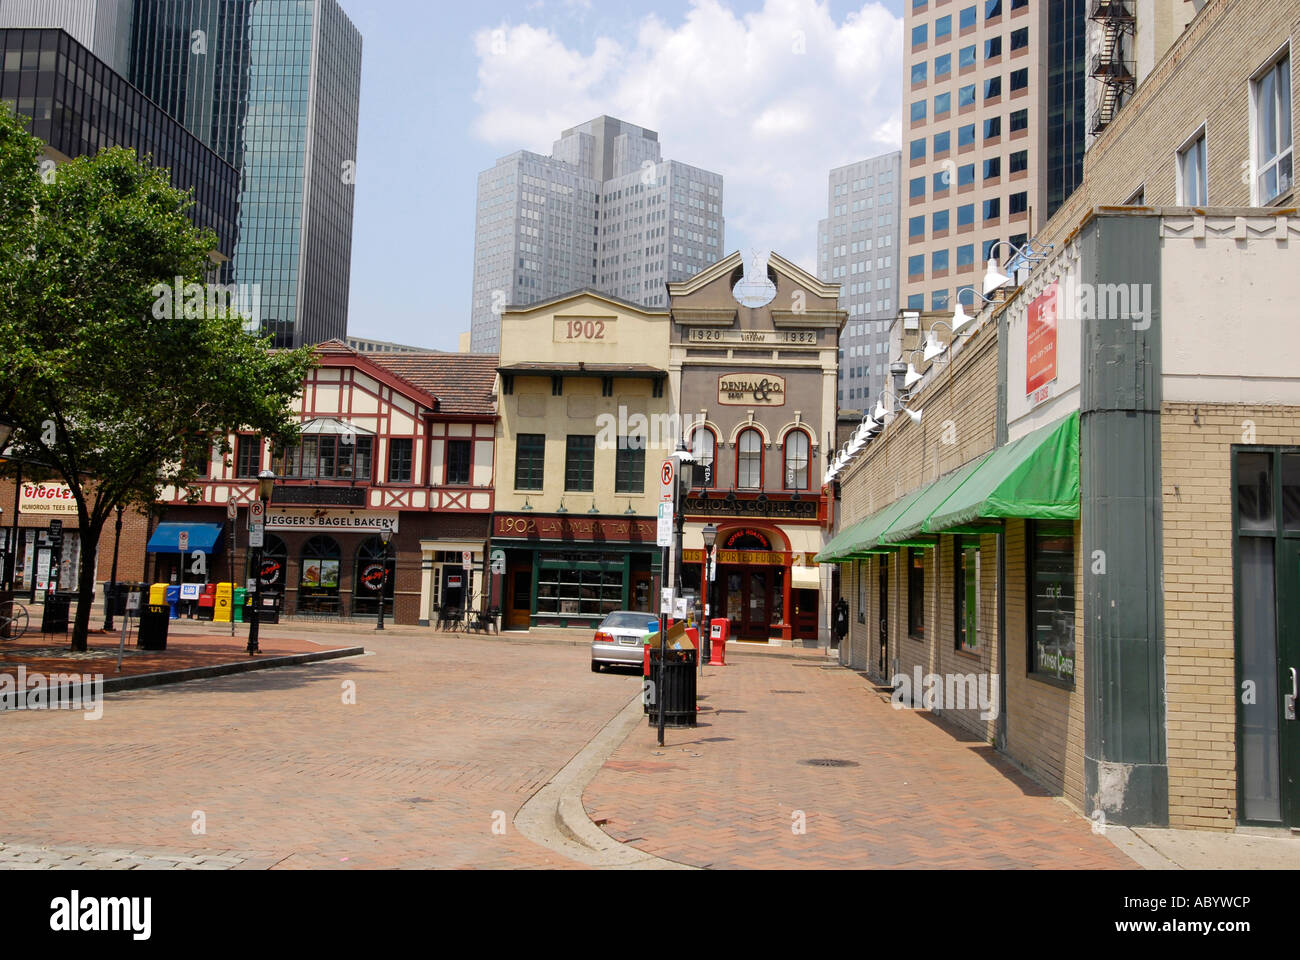 Best Pittsburgh Shopping: See reviews and photos of shops, malls & outlets in Pittsburgh, Pennsylvania on TripAdvisor.